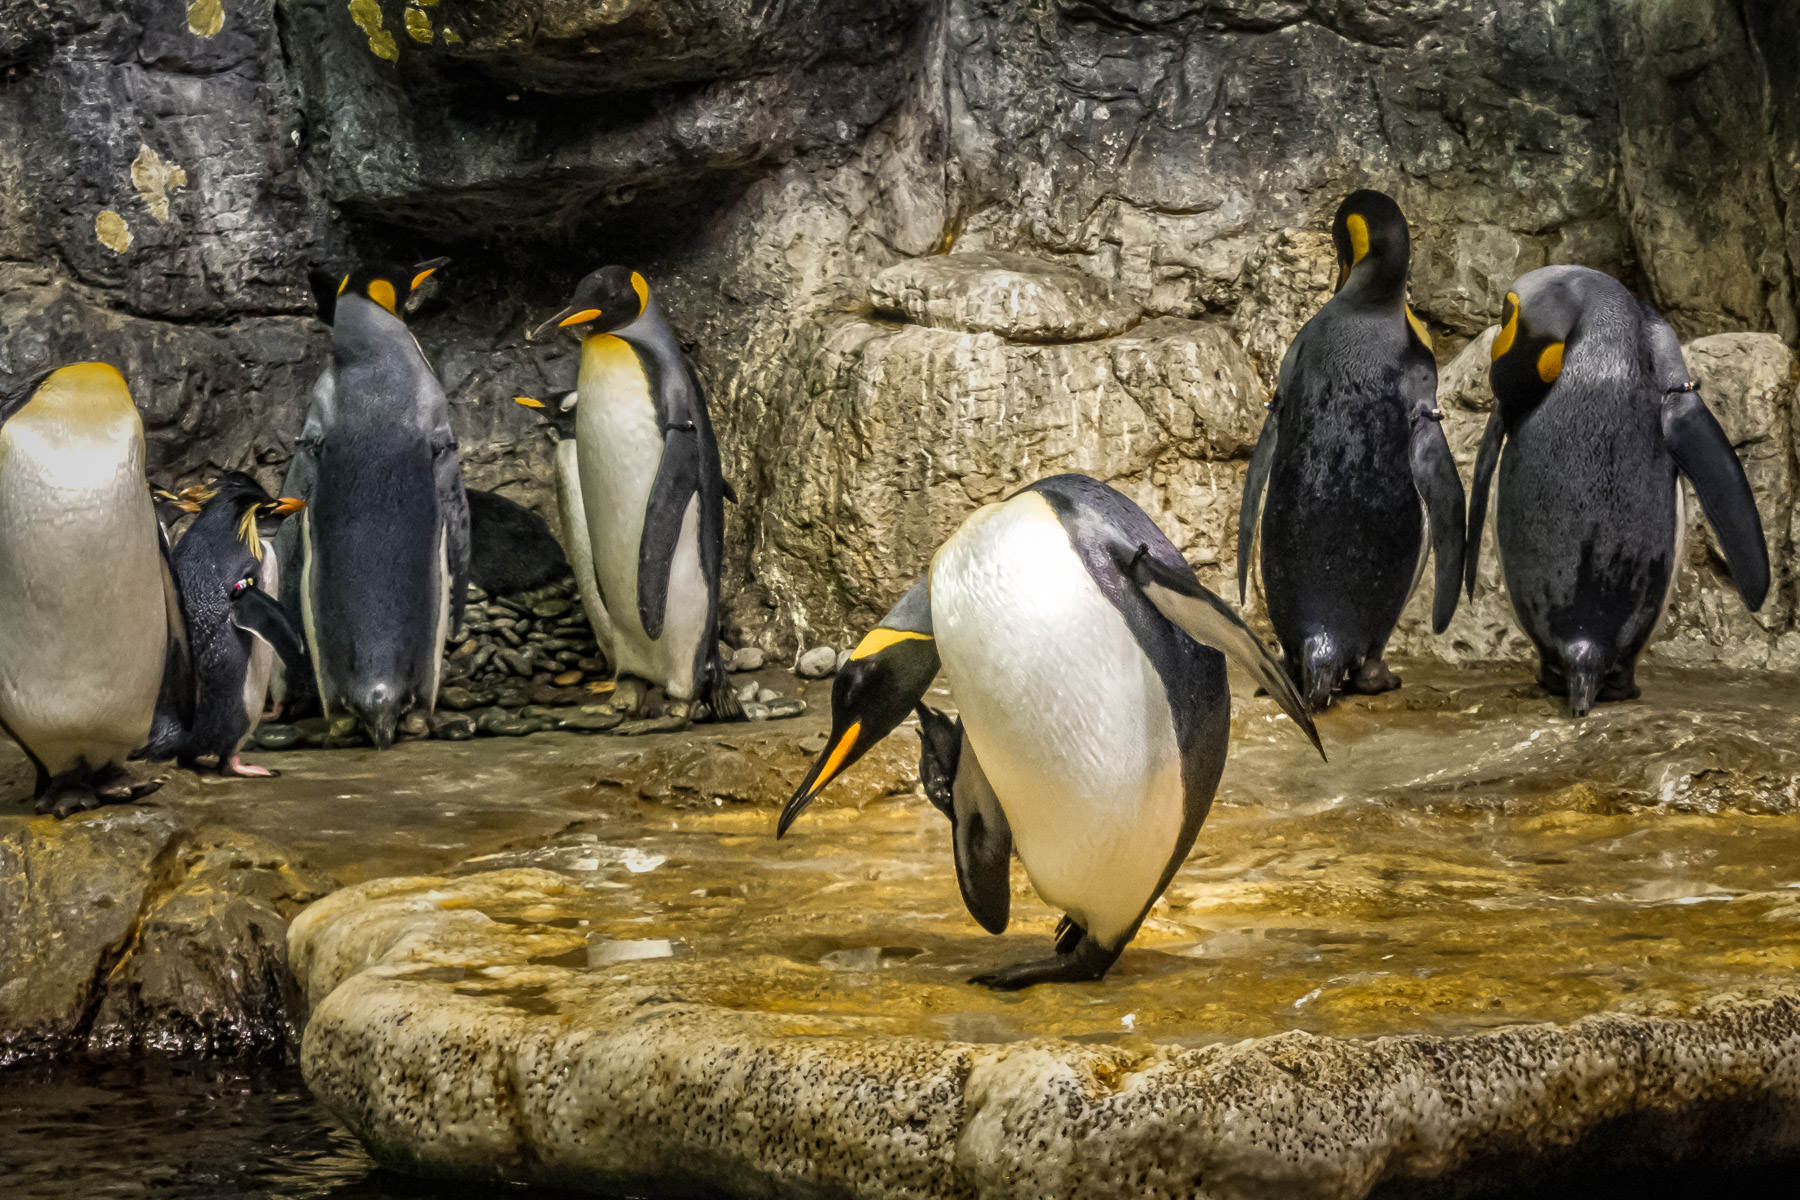 A penguin scratches an itch at Moody Gardens in Galveston, Texas.